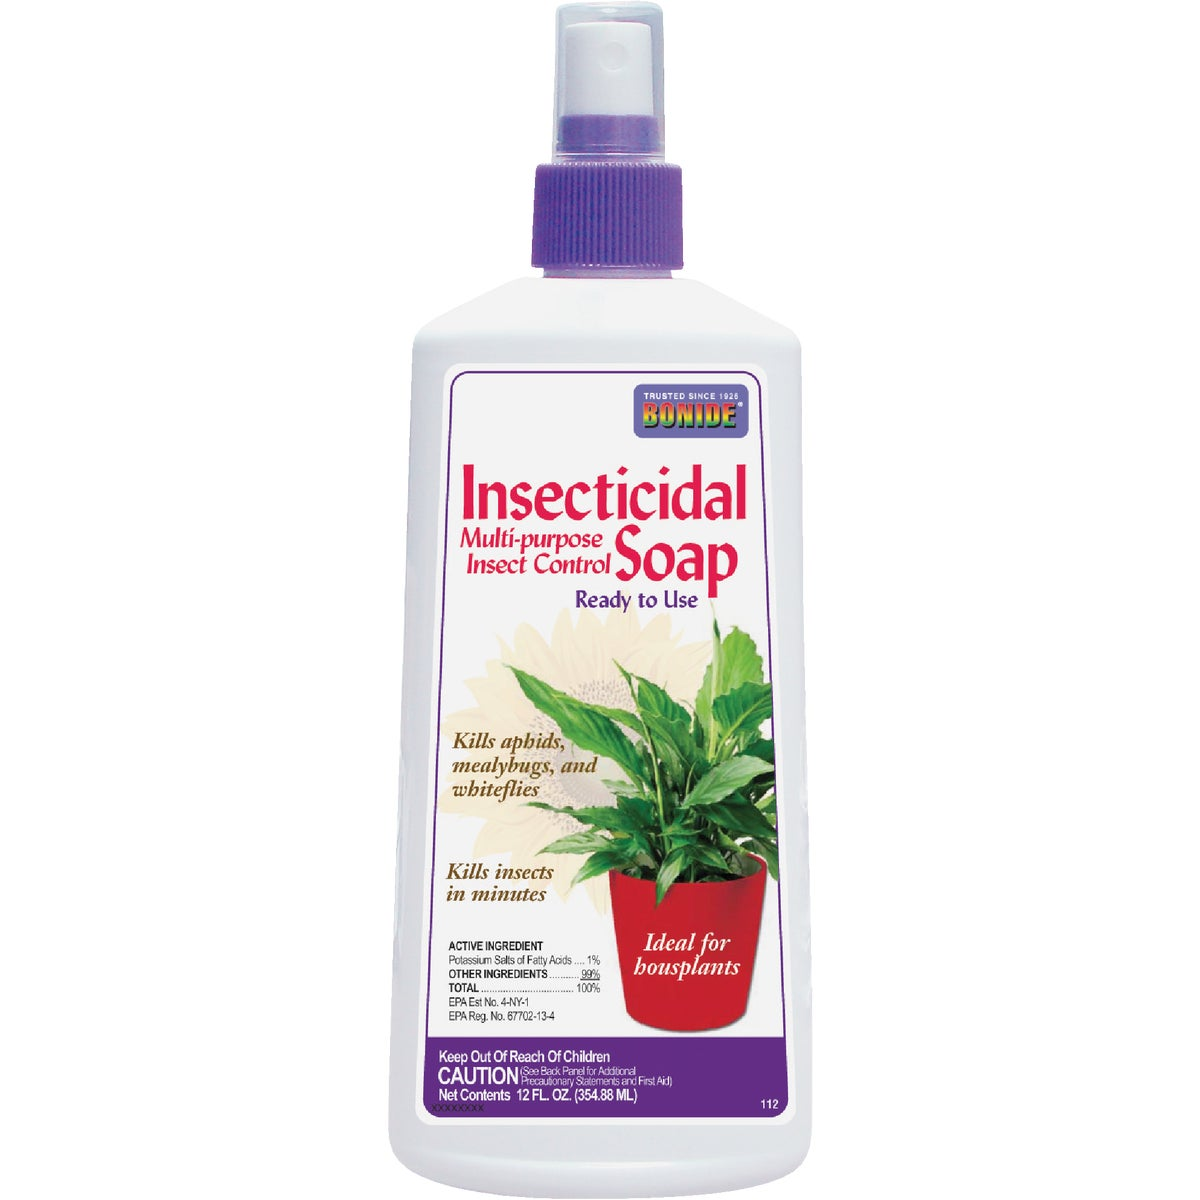 12 OZ INSECTICIDE SOAP - 112 by Bonide